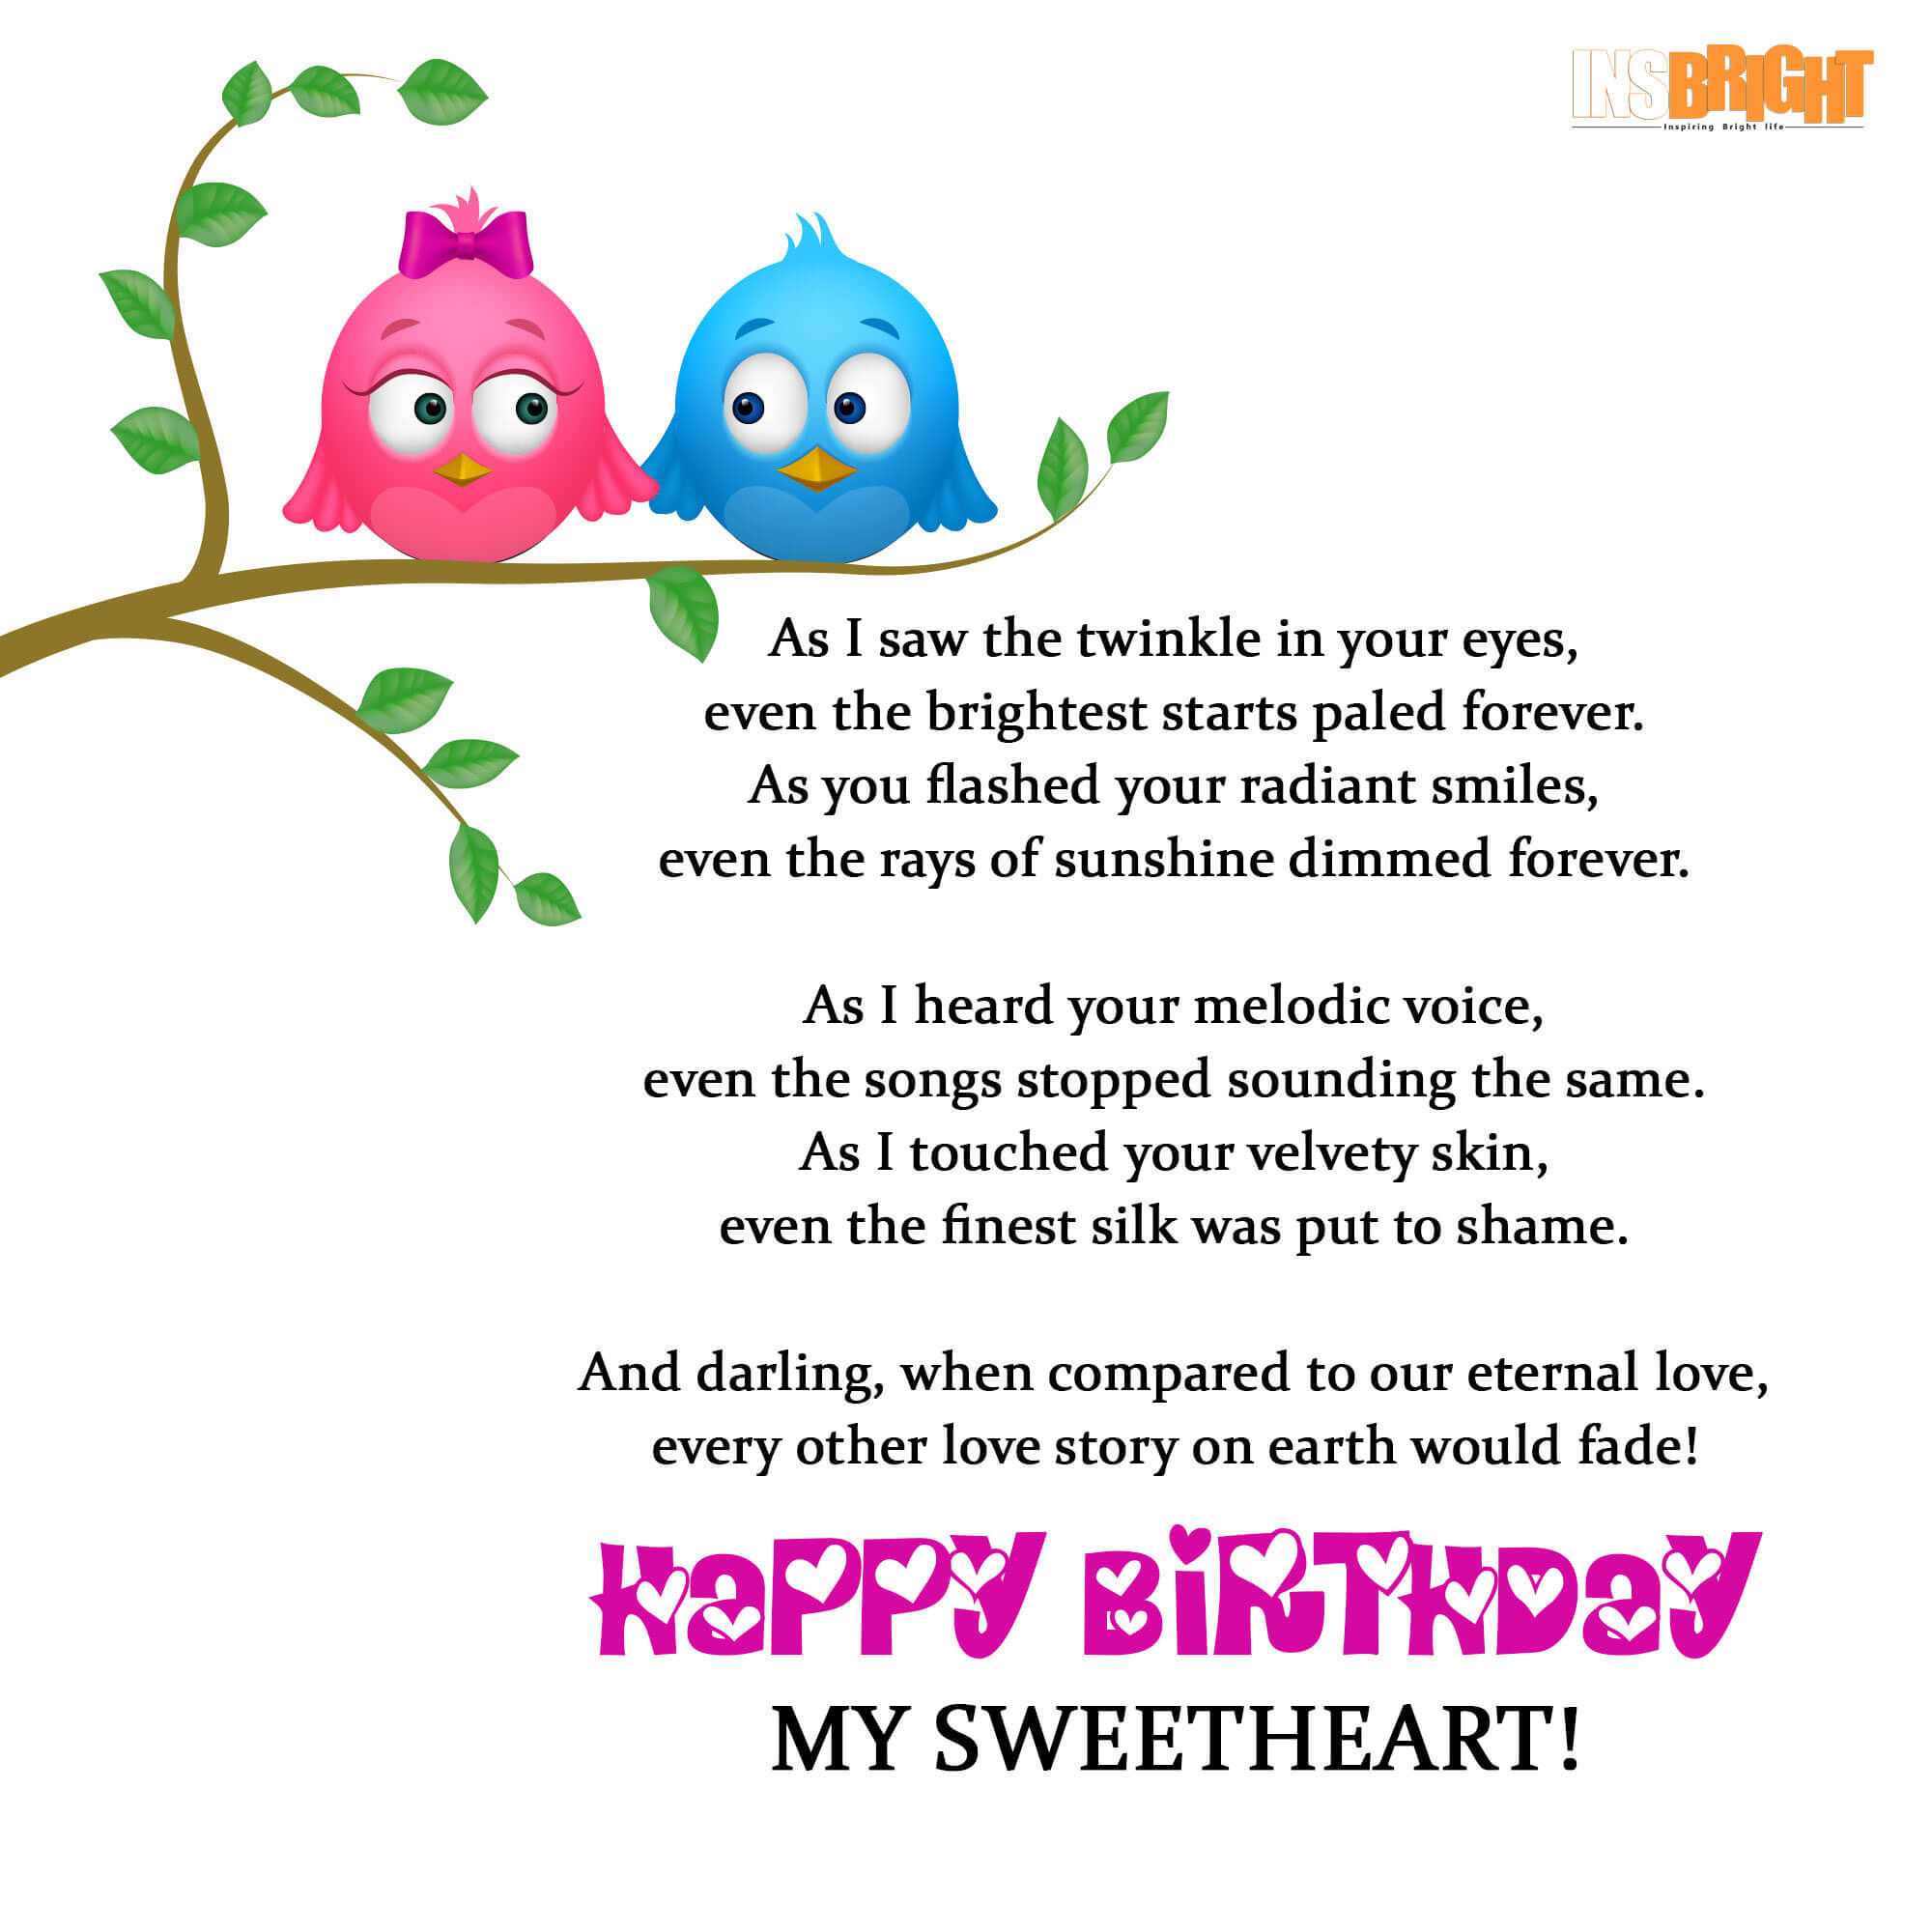 10 Romantic Happy Birthday Poems For Wife With Love From